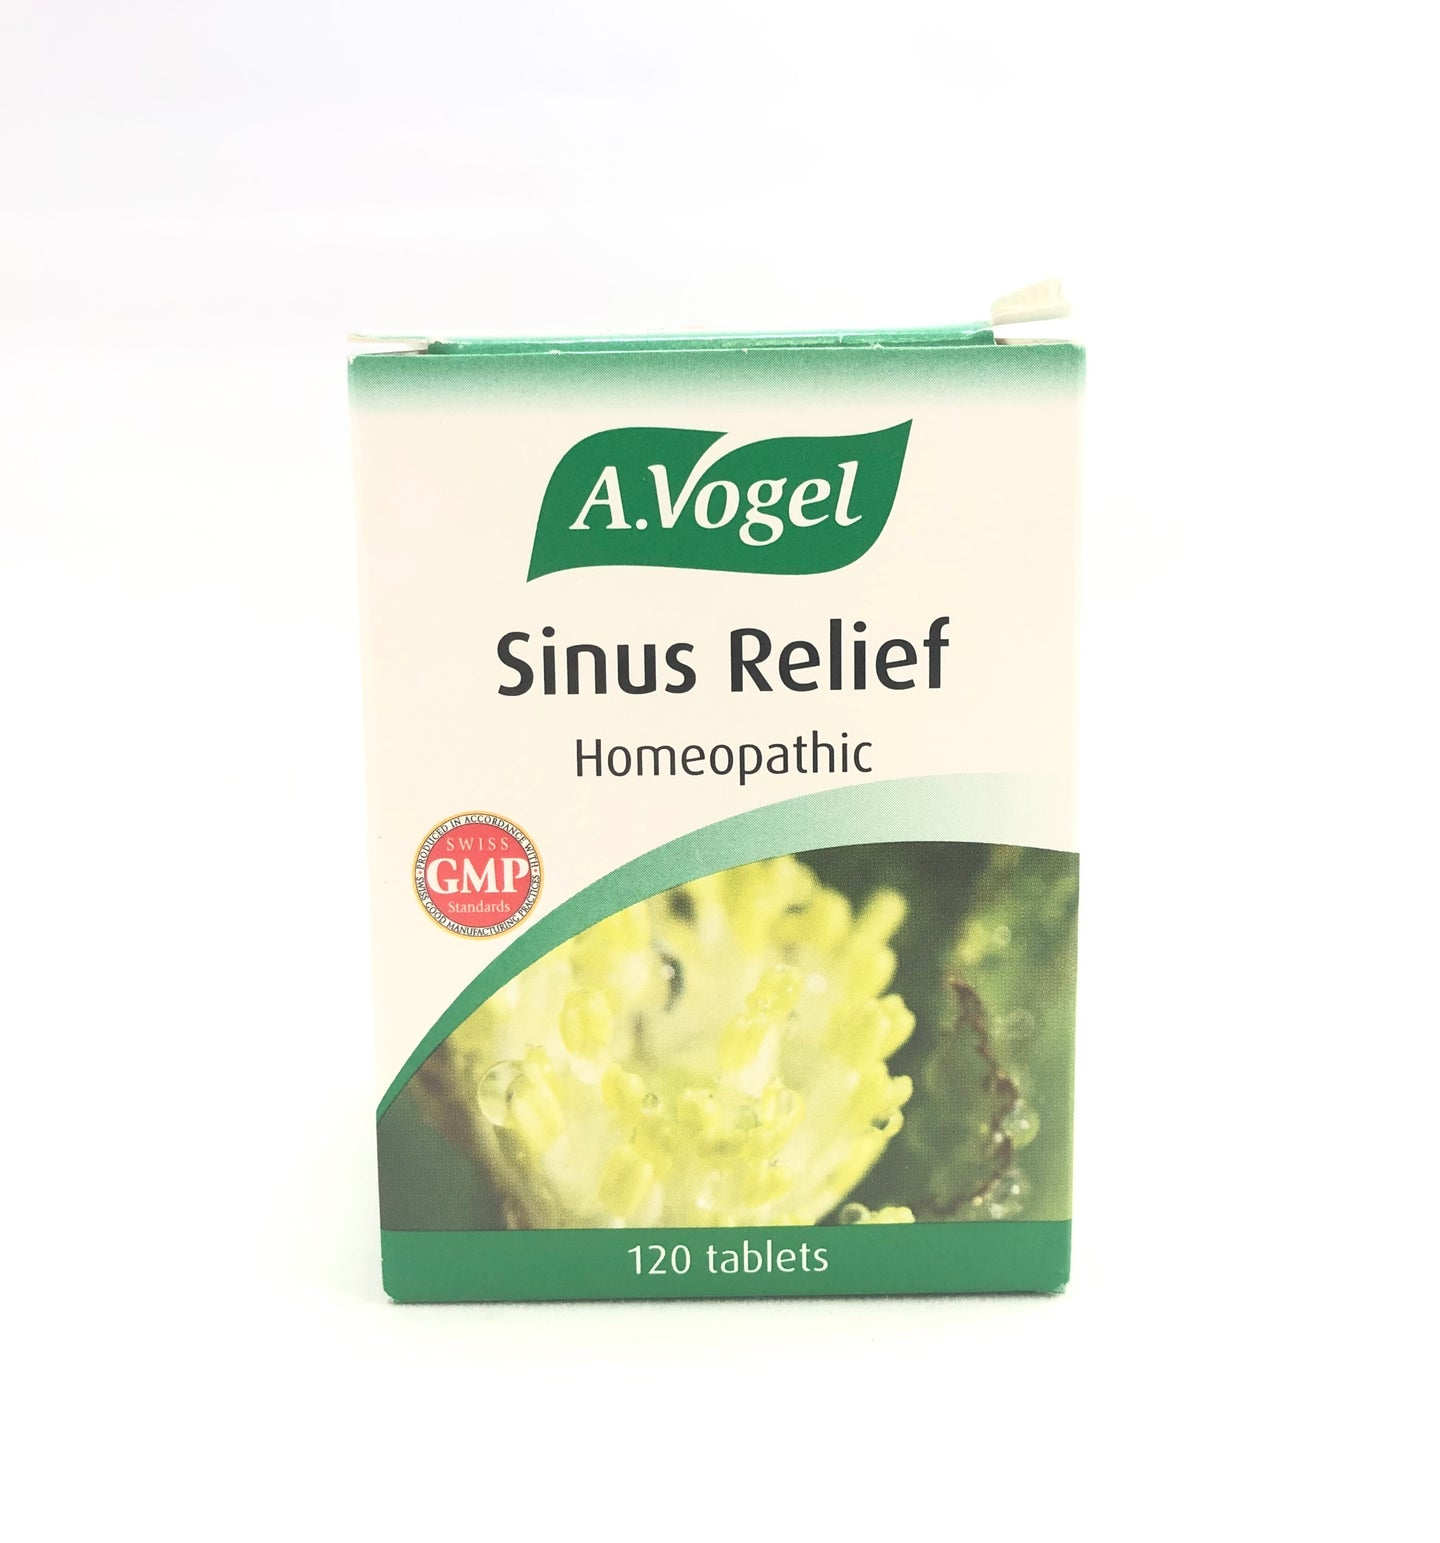 A. Vogel Sinus Relief 120 Tablets